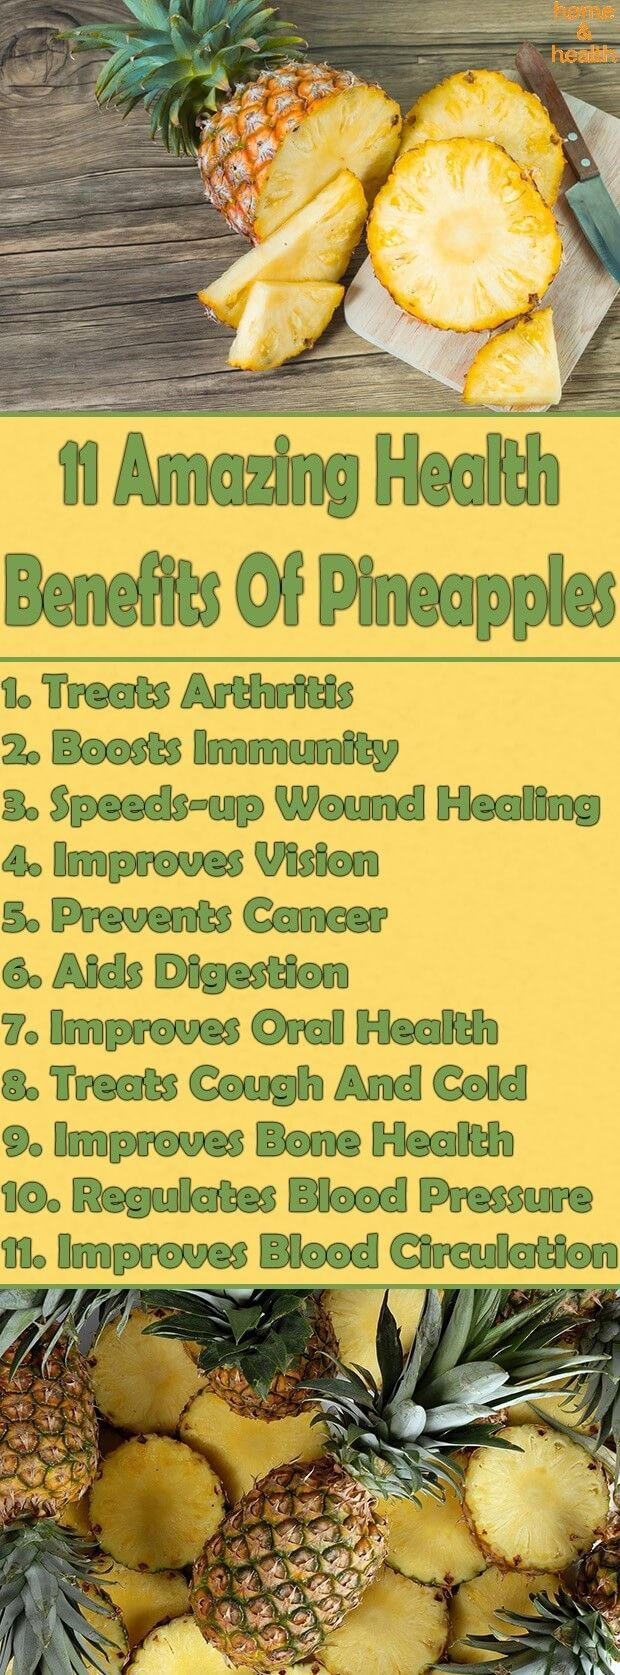 Pineapples have several health benefits due to their wealth of nutrients. They contain vitamins, and minerals, including potassium, copper, calcium, magnesium, #vitamin C, beta-carotene, thiamin, vitamin B6, and folate.